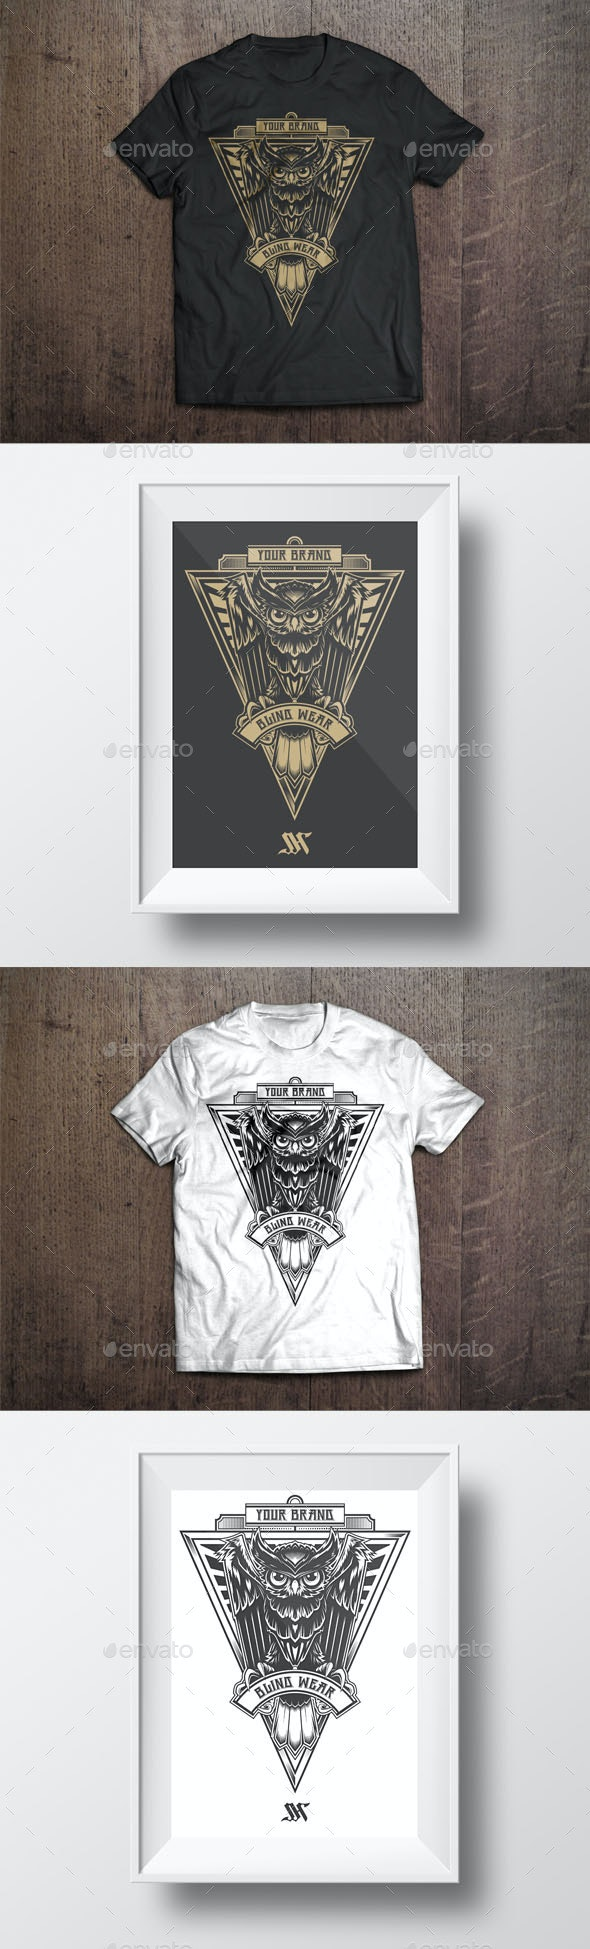 T-Shirt Illustration - Owl Theme